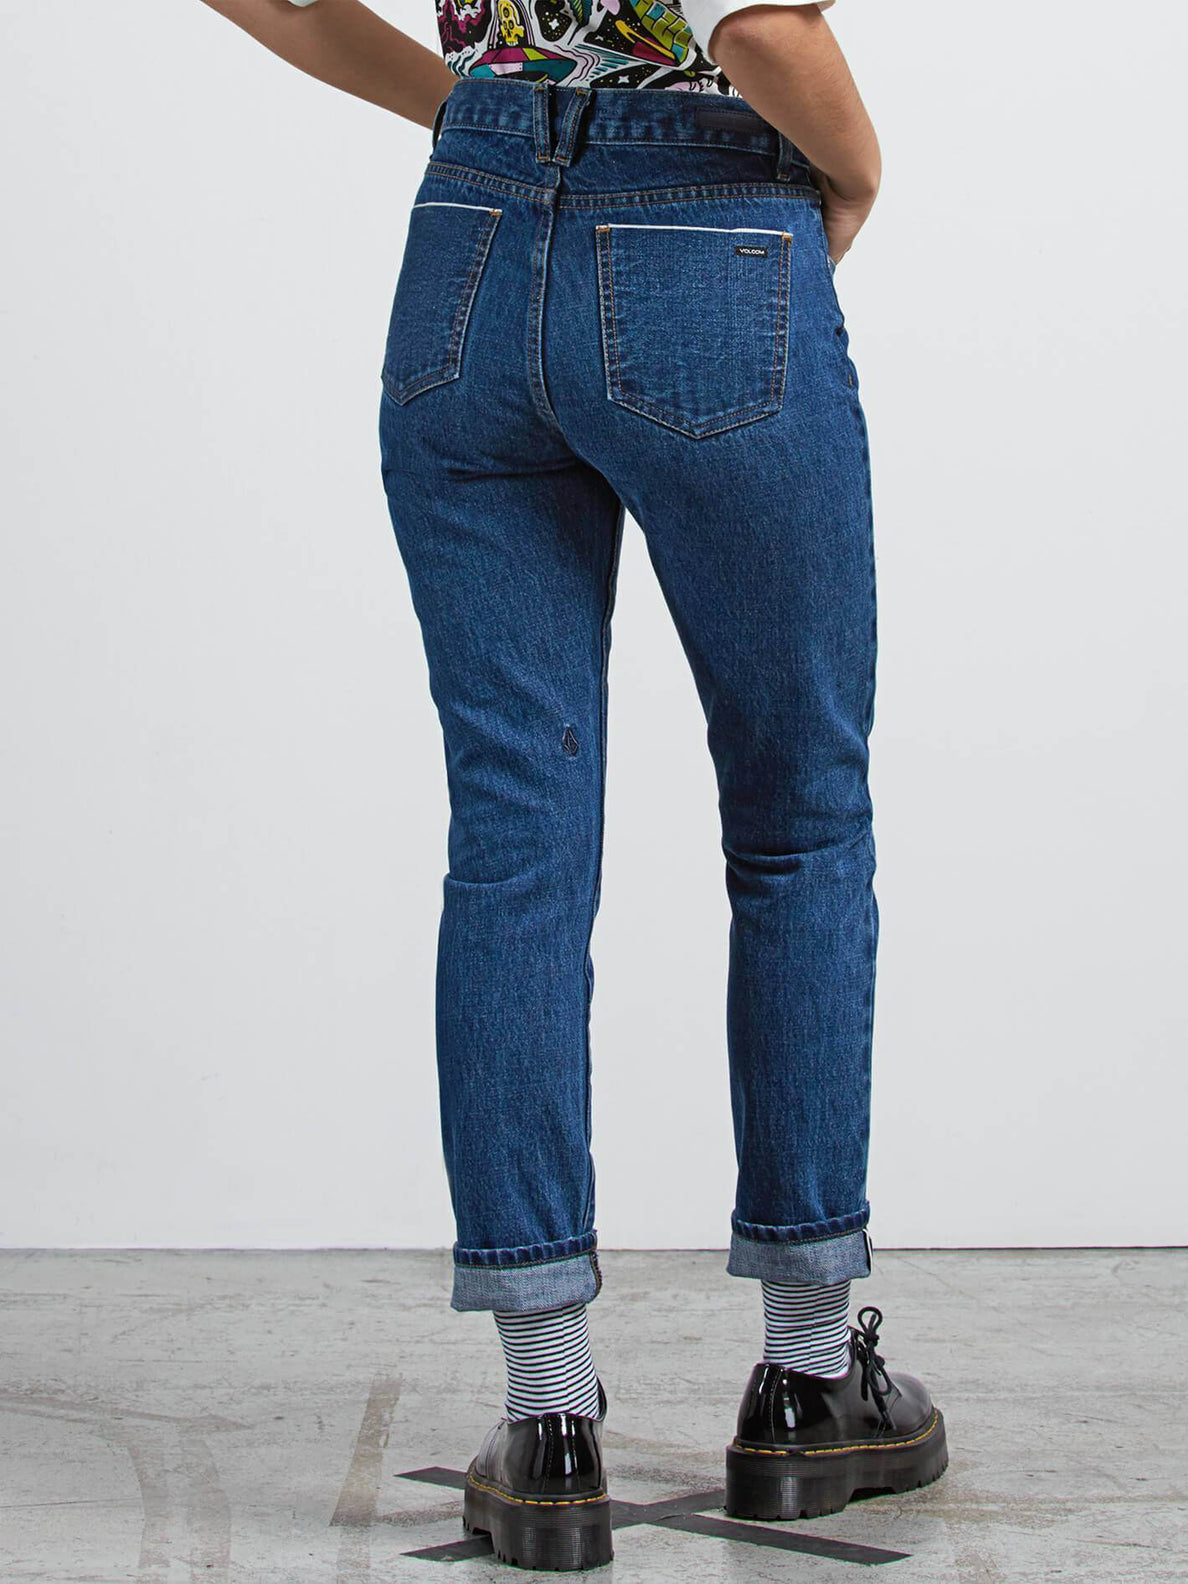 Jean Super Stoned Skinny - Used Blue